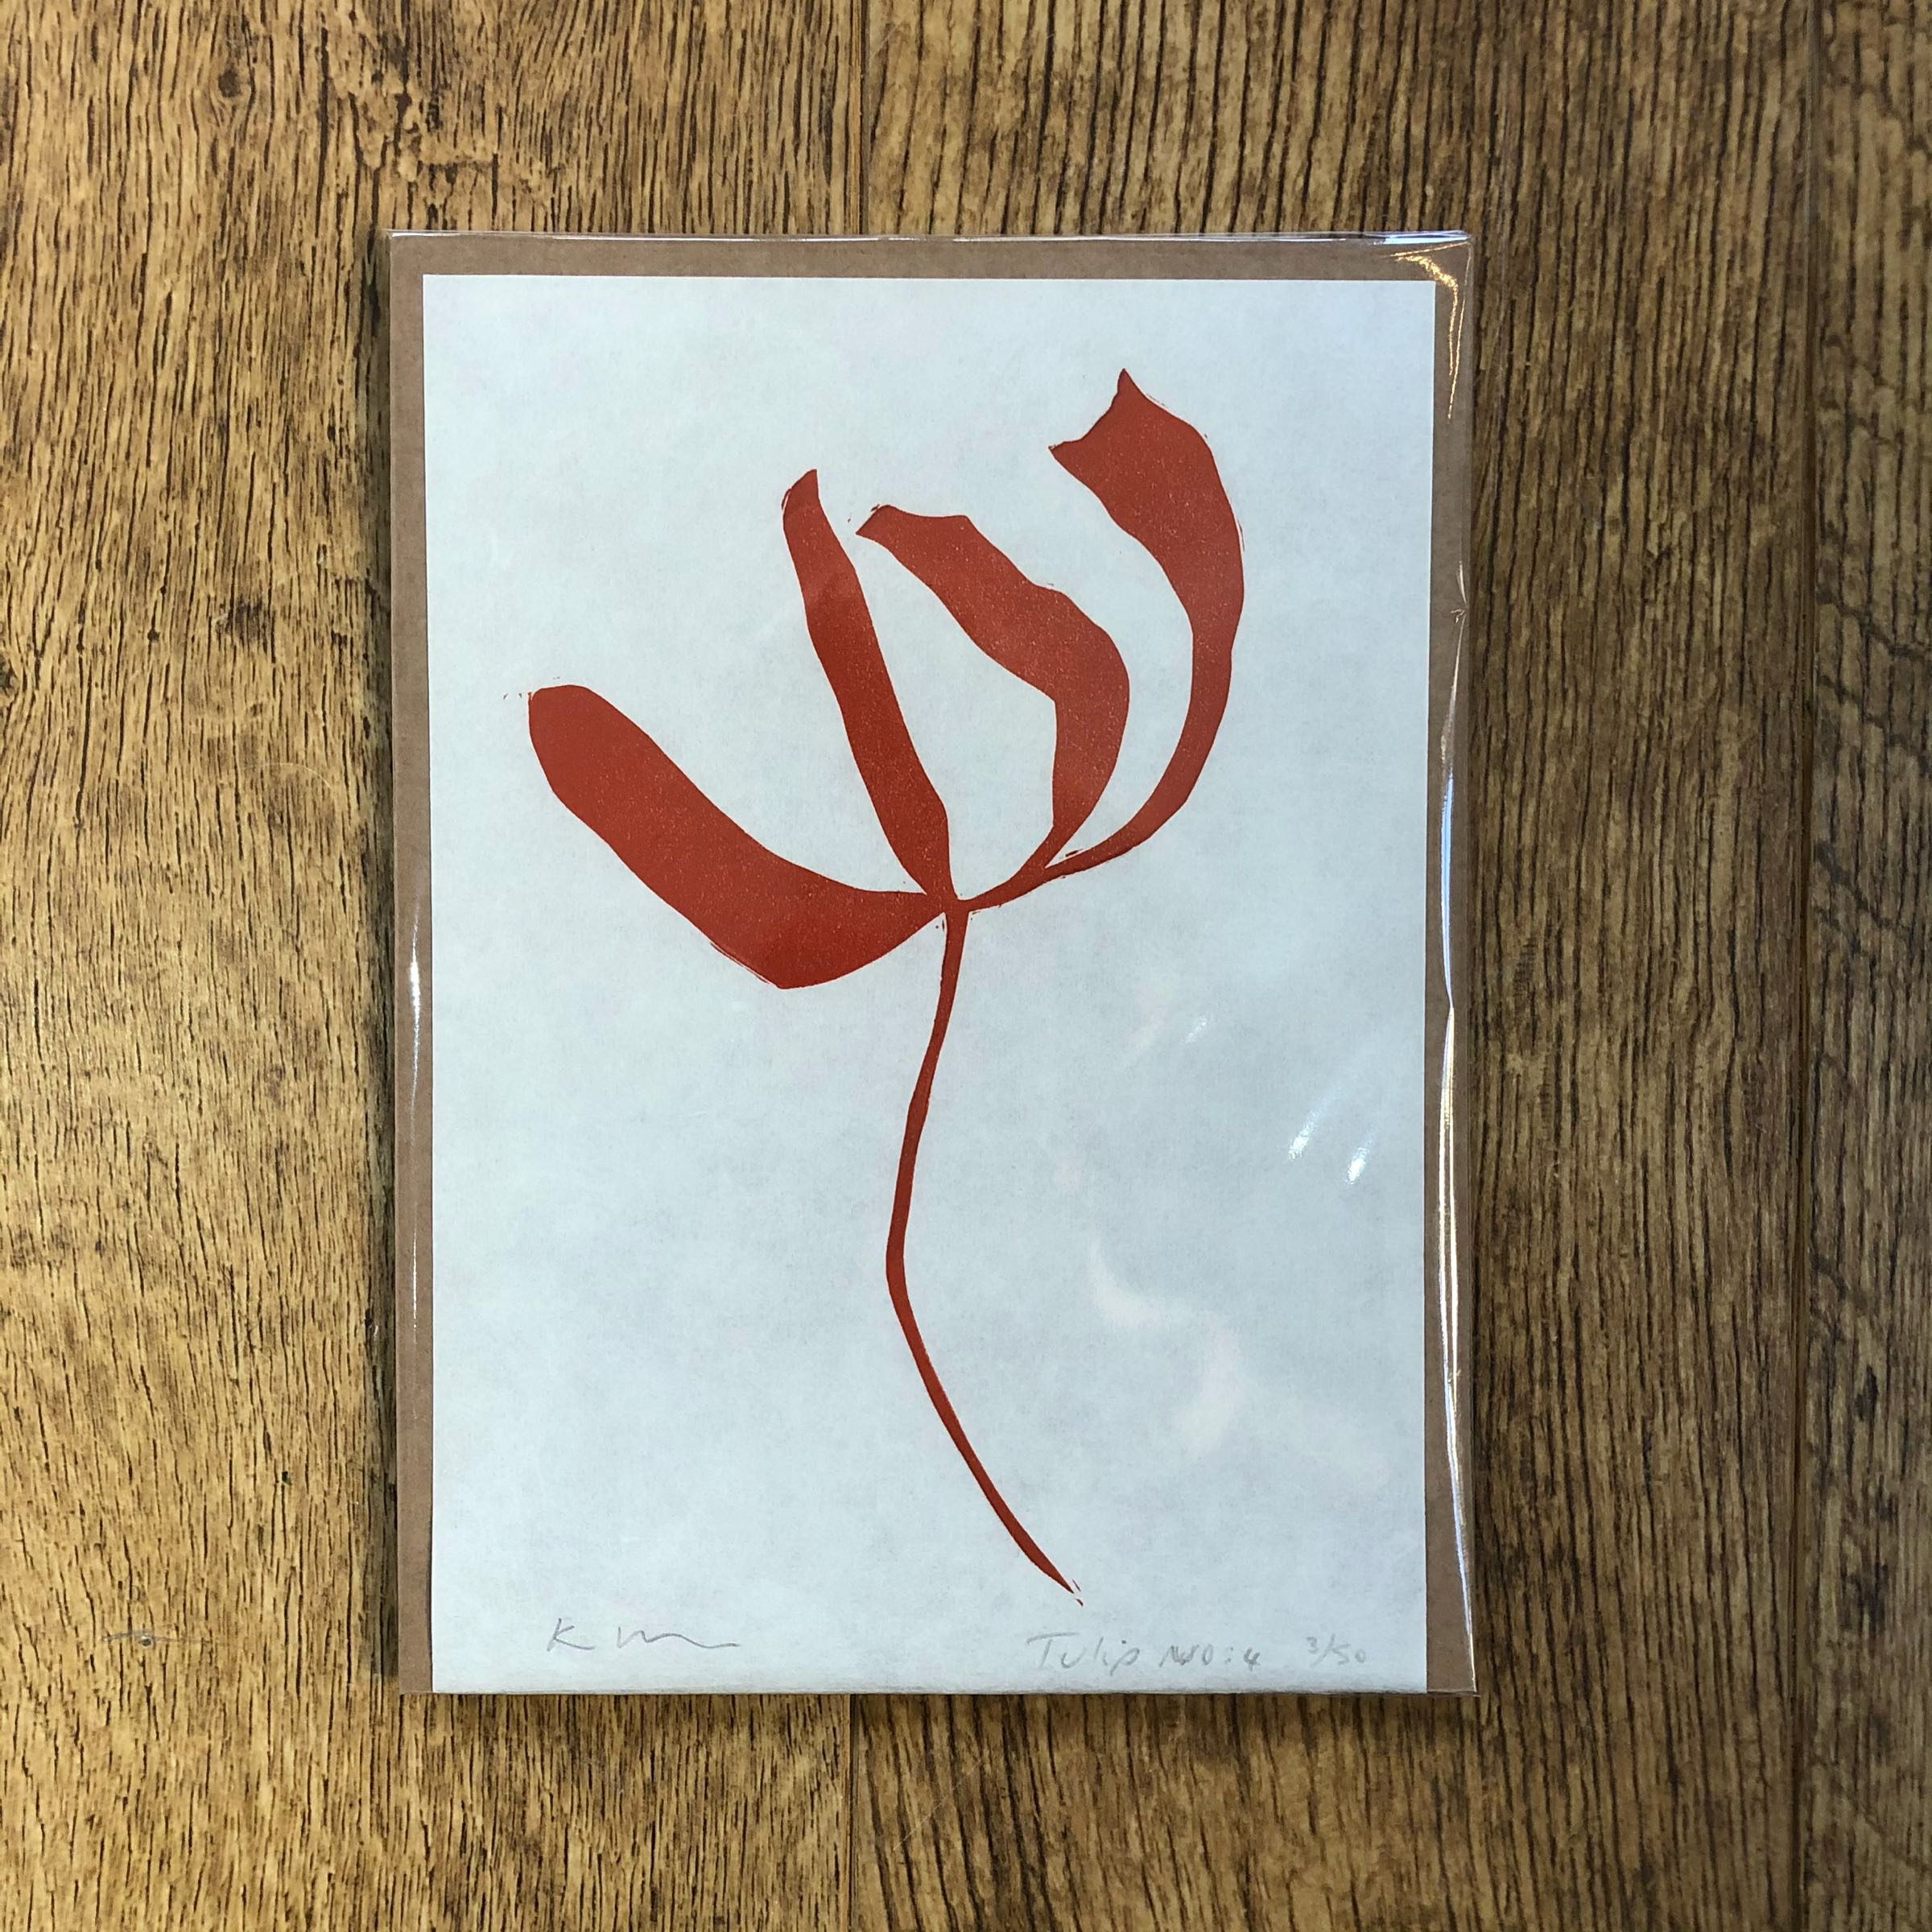 Tulip No.4 single study lino print in Rust by Kathy Hutton